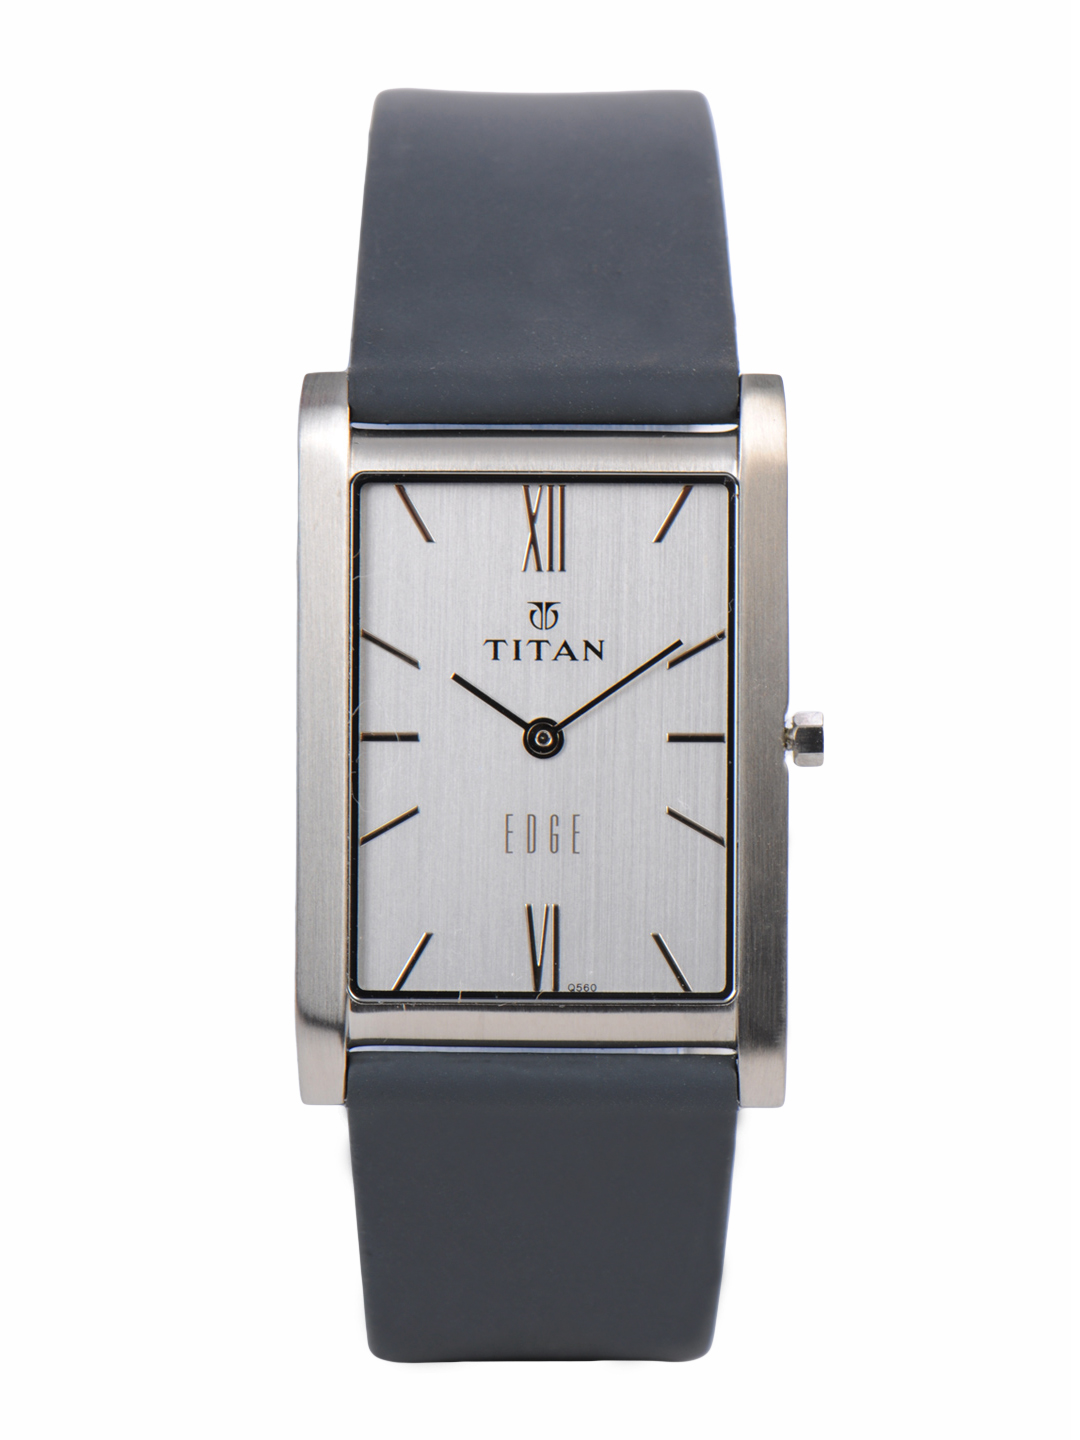 low unisex amazon at titan dp buy online in prices india watch edge watches